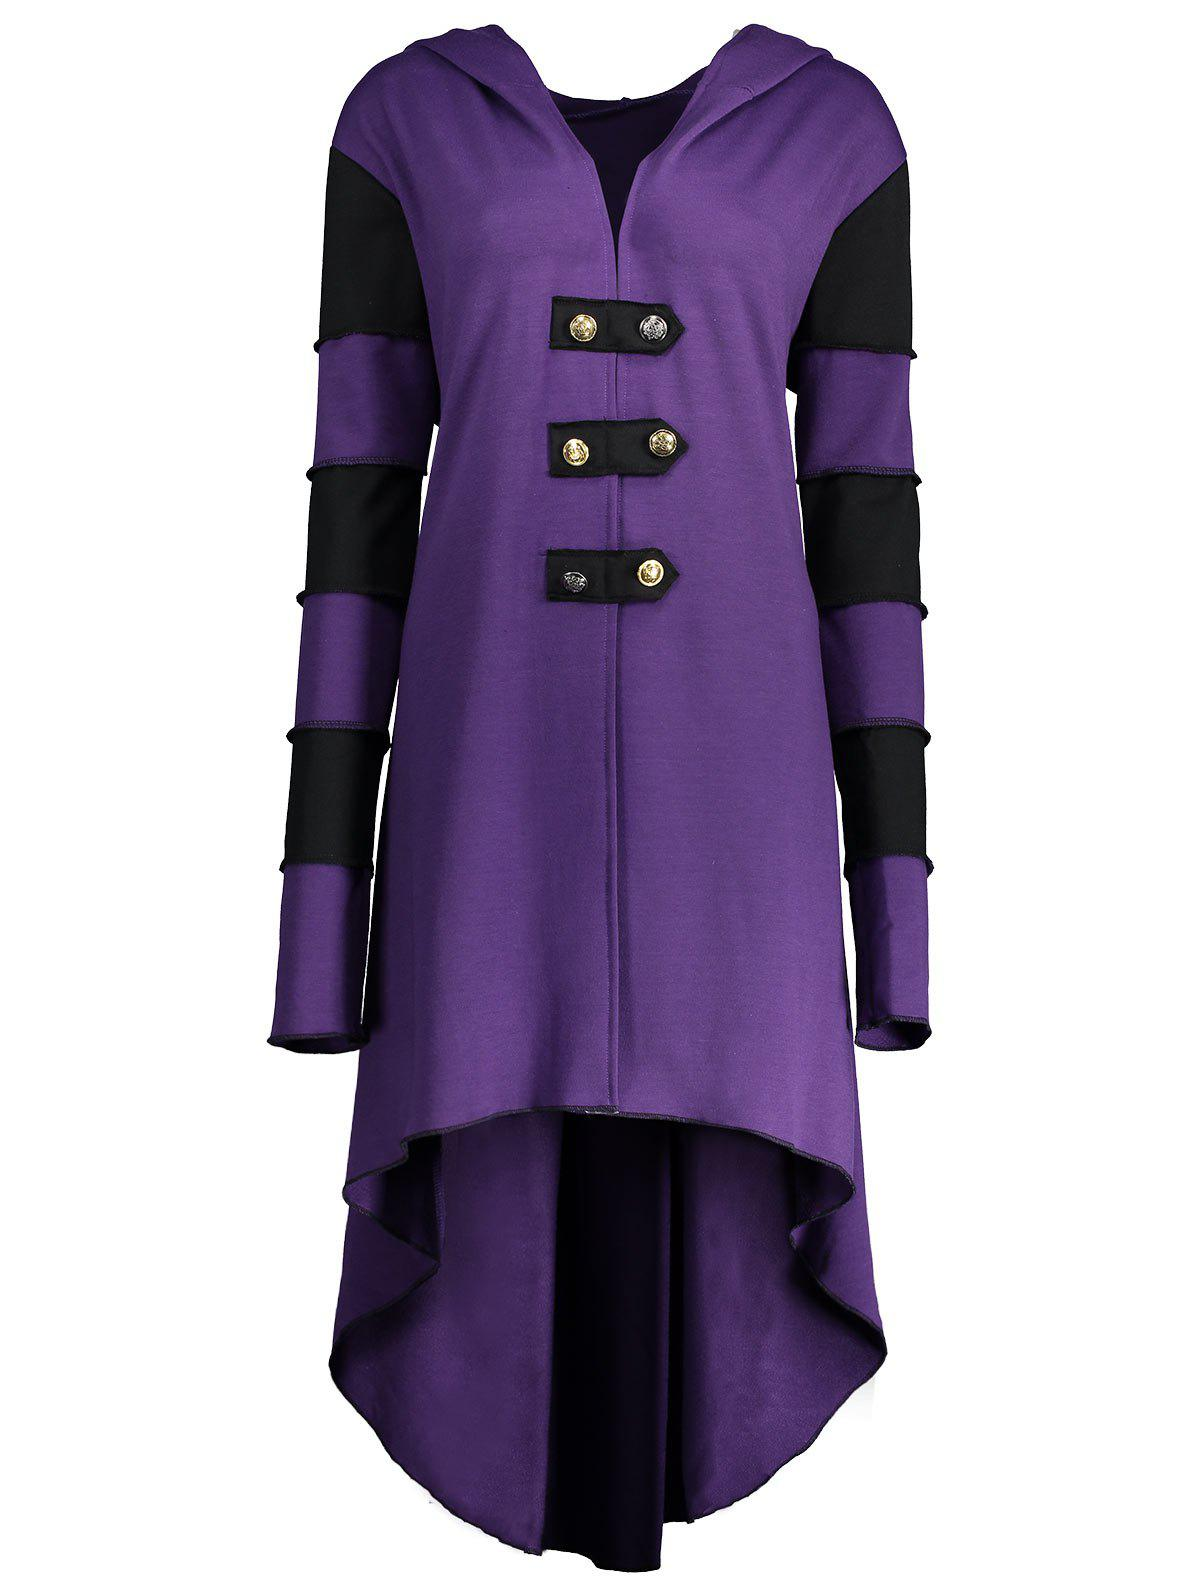 Hooded Plus Size Lace-up High Low  CoatWOMEN<br><br>Size: 5XL; Color: PURPLE; Clothes Type: Others; Material: Polyester,Spandex; Type: Asymmetric Length; Shirt Length: Long; Sleeve Length: Full; Collar: Hooded; Pattern Type: Others; Style: Fashion; Season: Fall,Winter; Weight: 0.6200kg; Package Contents: 1 x Coat;